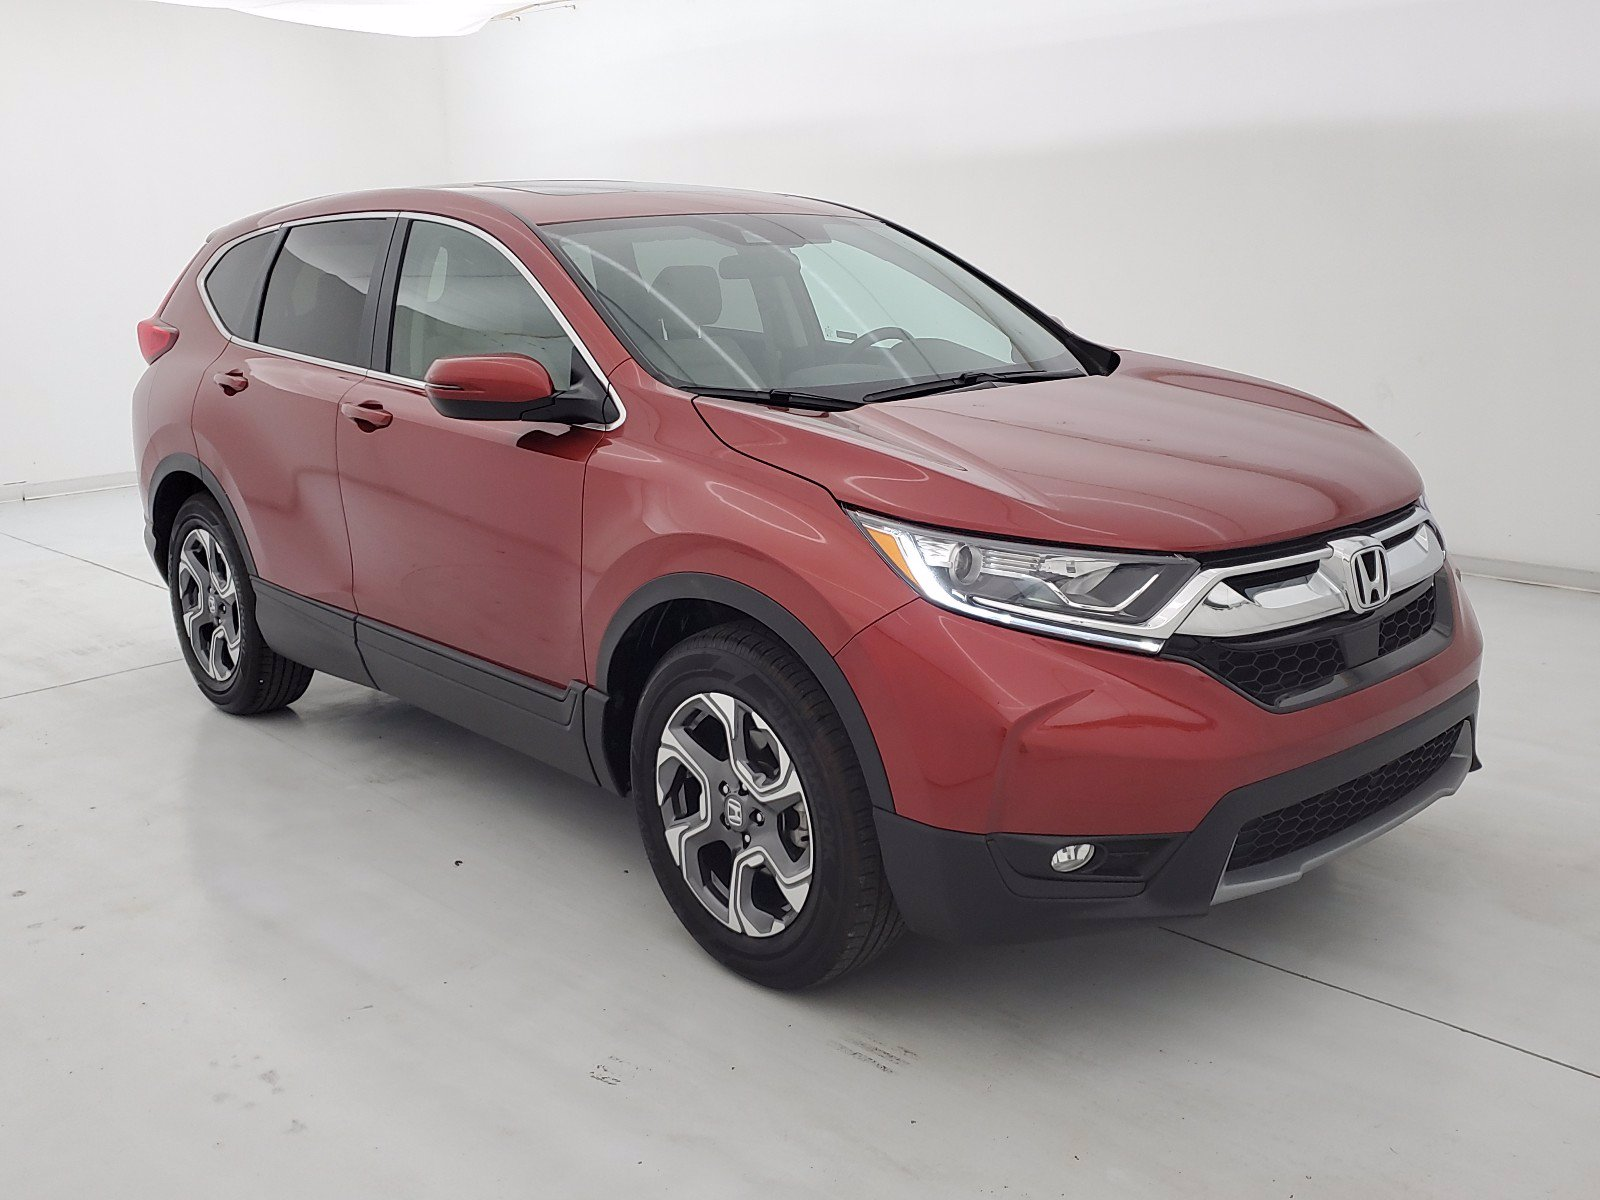 Used Honda Cr V Pembroke Pines Fl